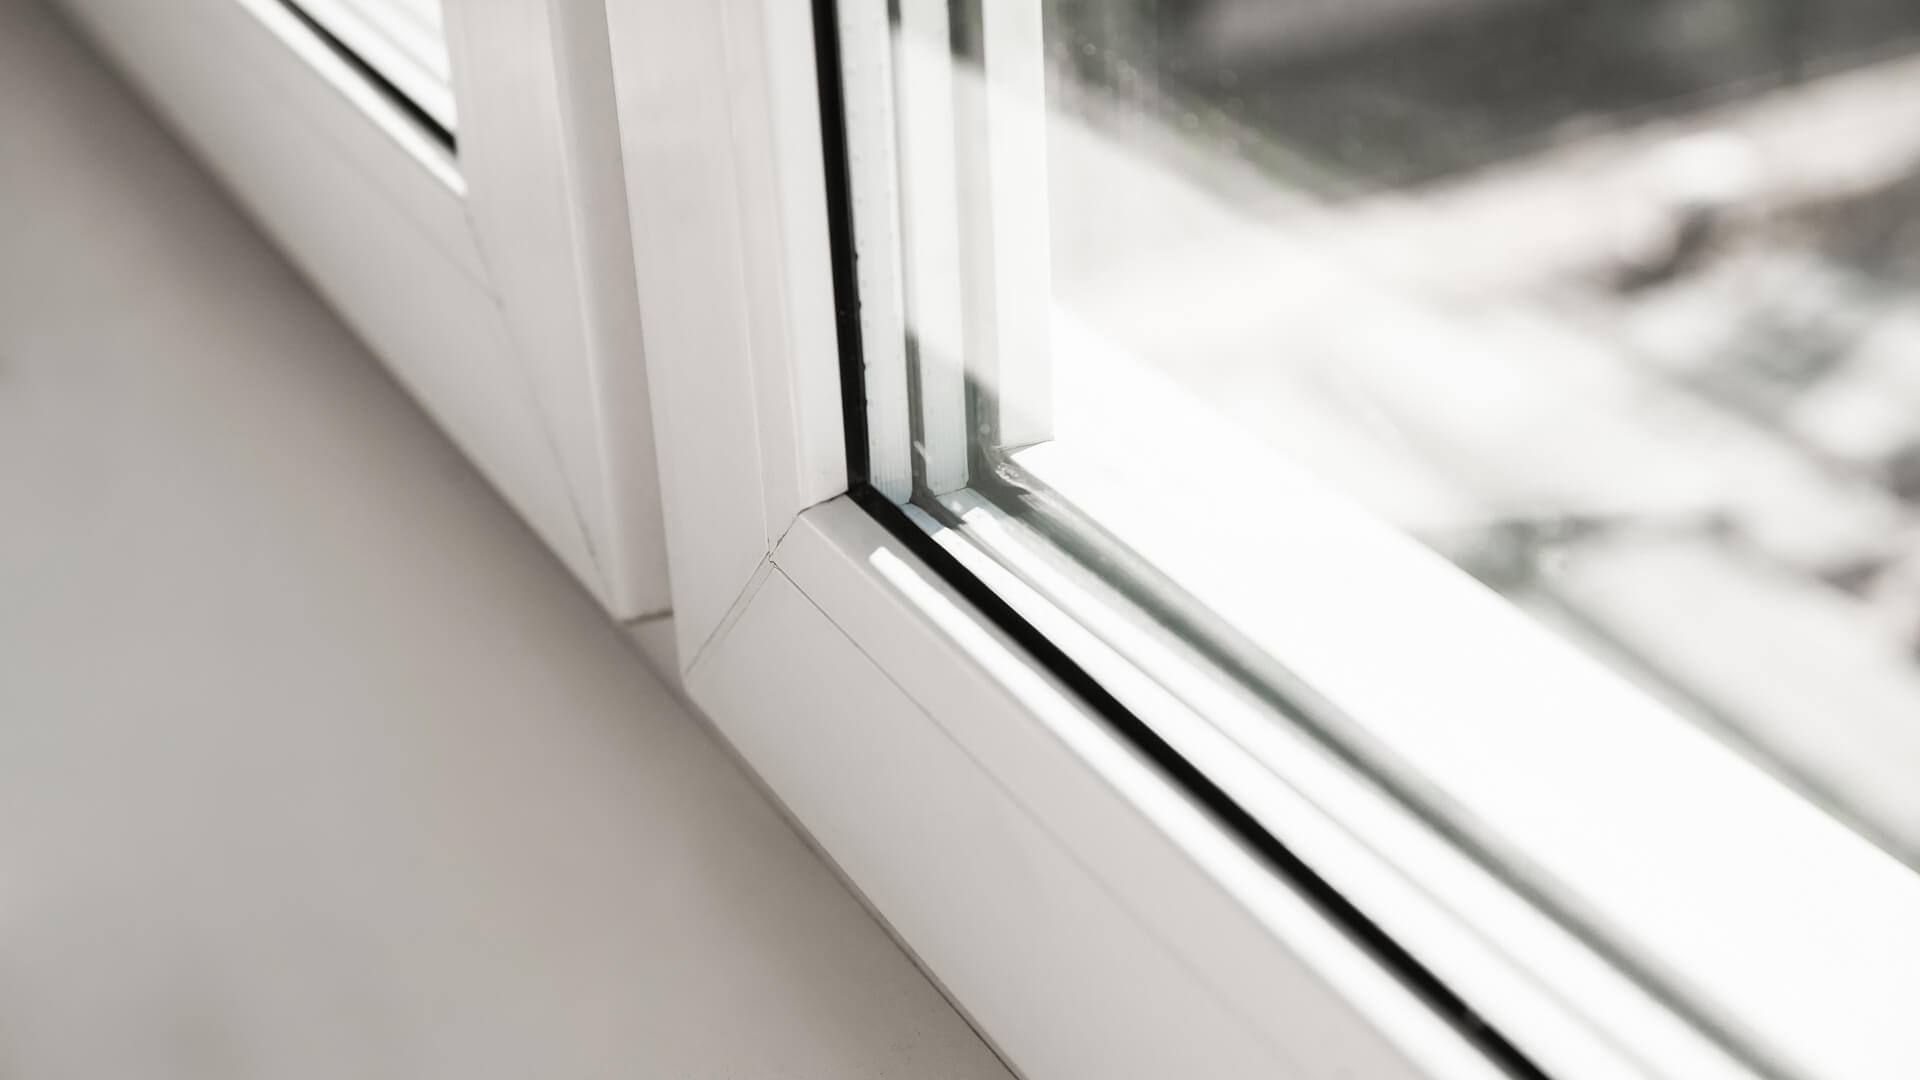 Double Pane Windows Lose Their Seals